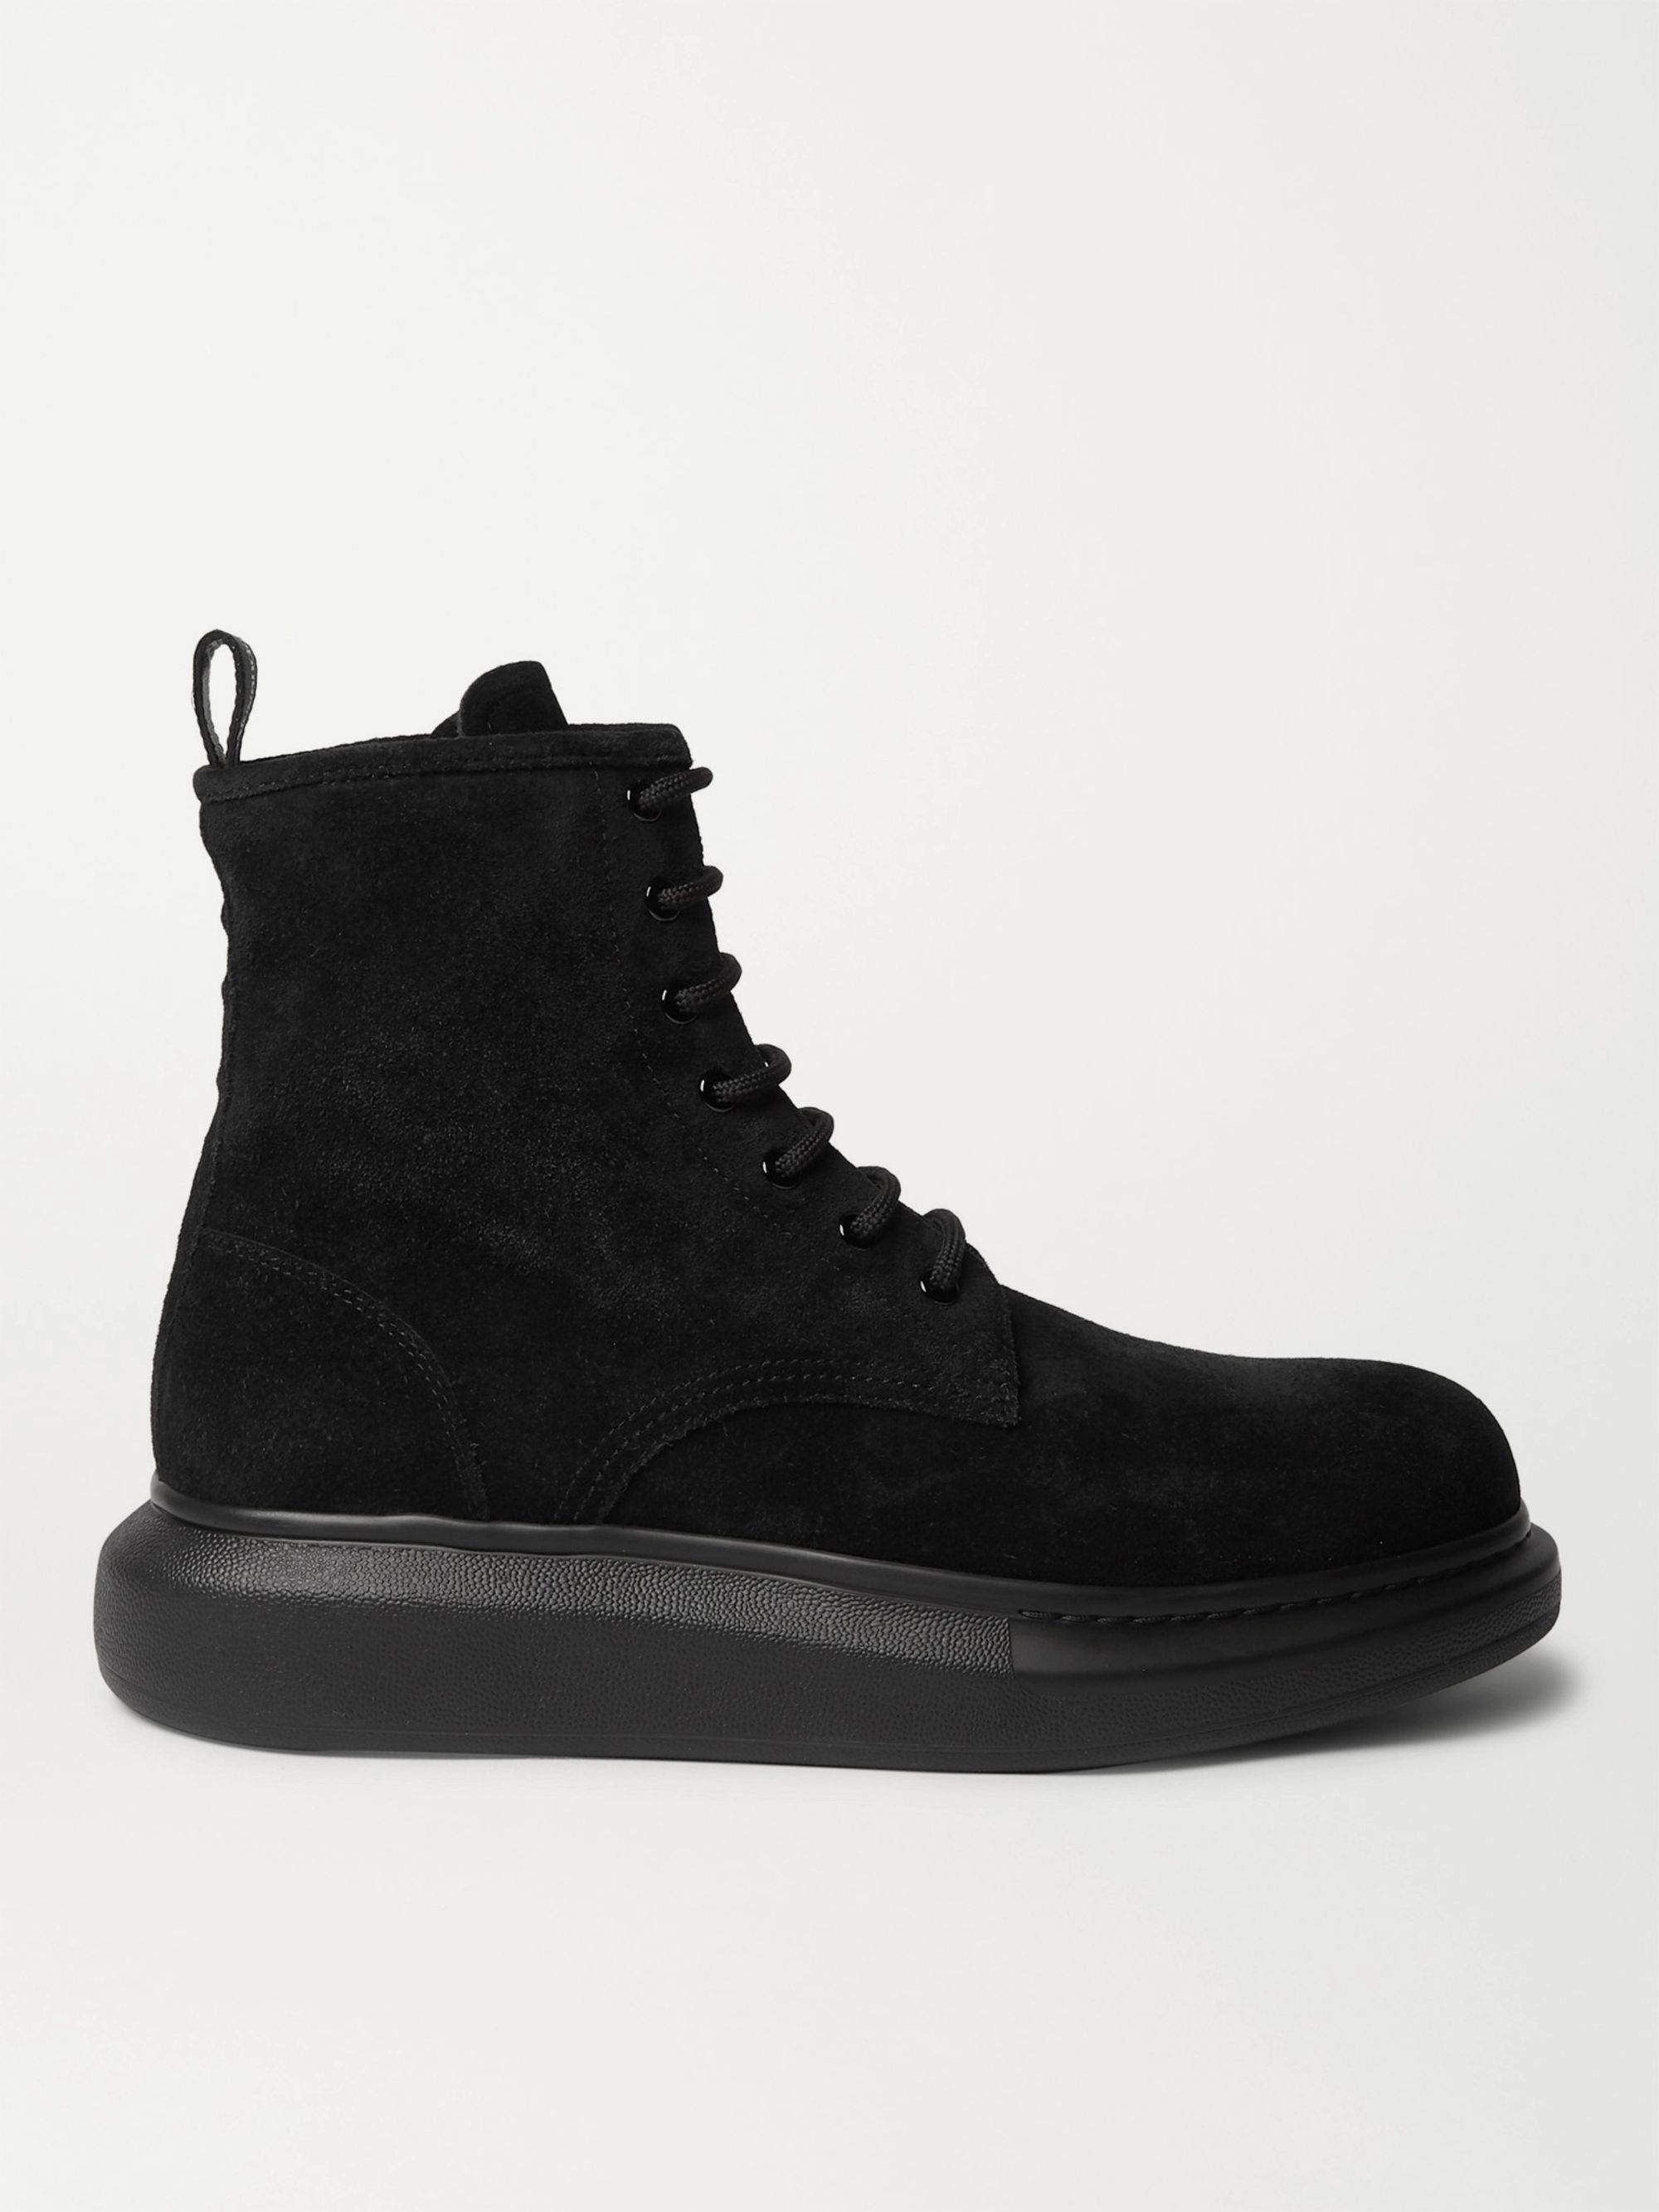 Alexander McQueen Exaggerated-Sole Suede Boots